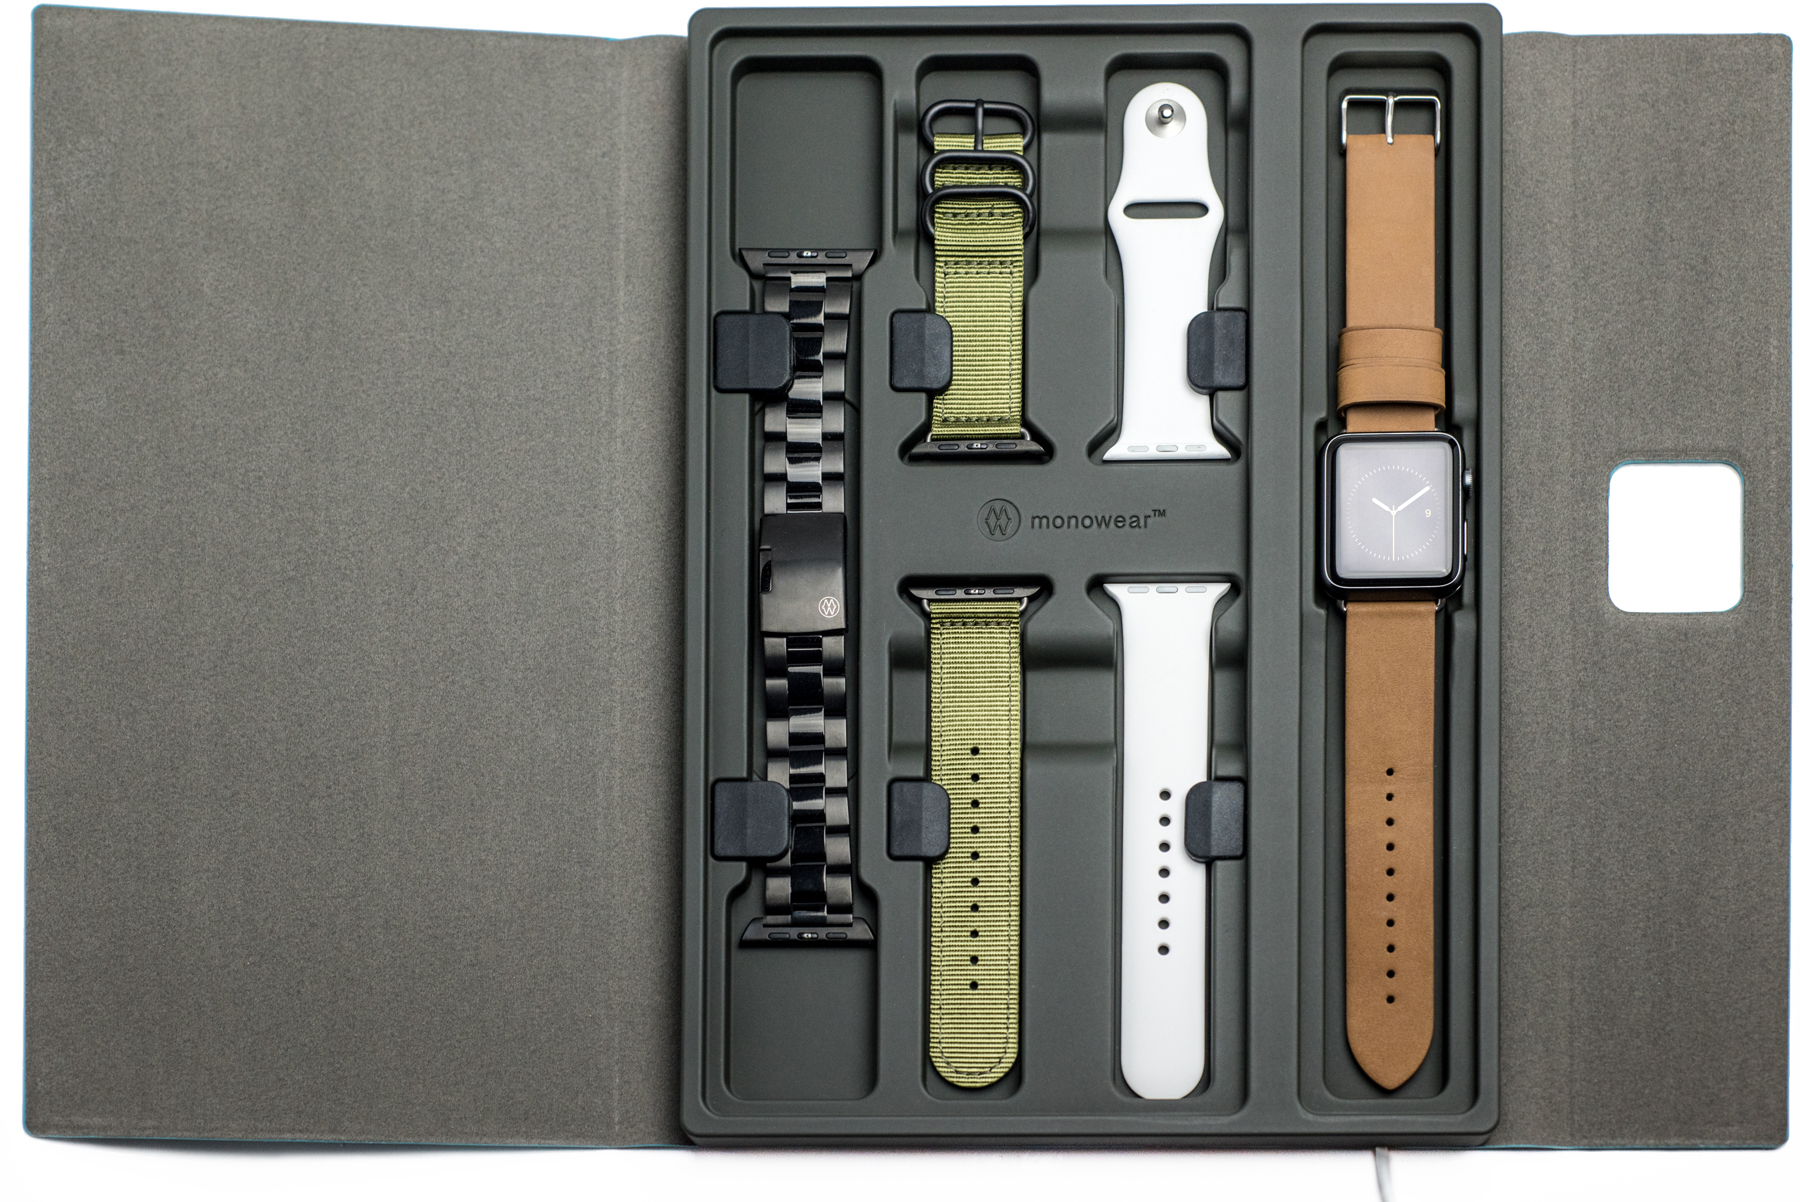 5c052c18de5b7 I've seen plenty of travel kits for Apple Watch, but the Monochest ($79.99)  by Monowear is the first Apple Watch band holder I've encountered.